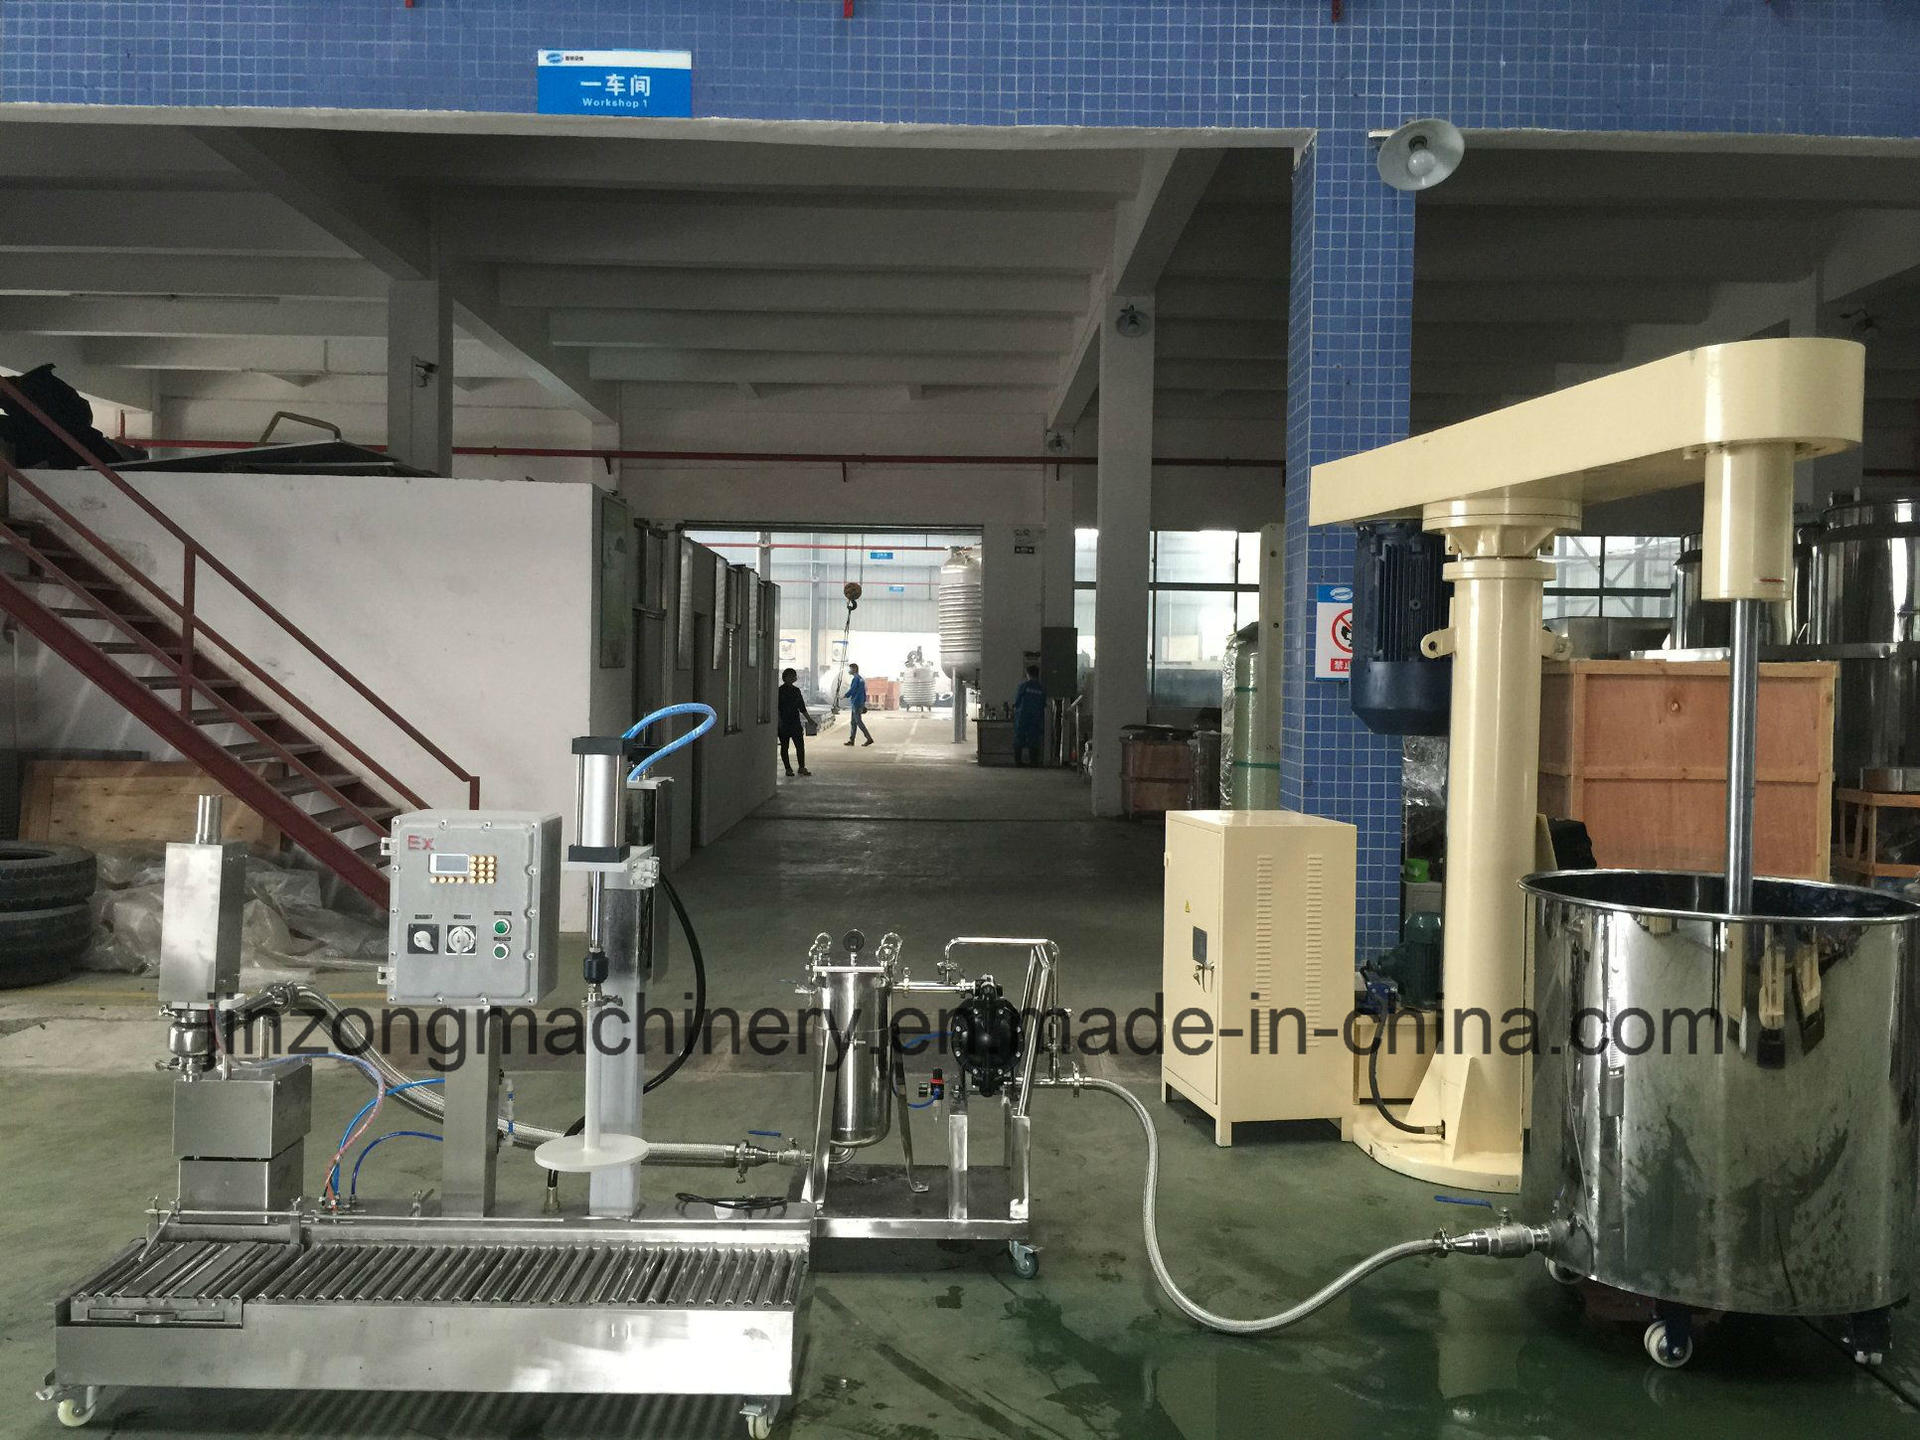 Glue/Printing Ink/Paint Making Machines Stainless Steel Paint Mixer Production Machine Price